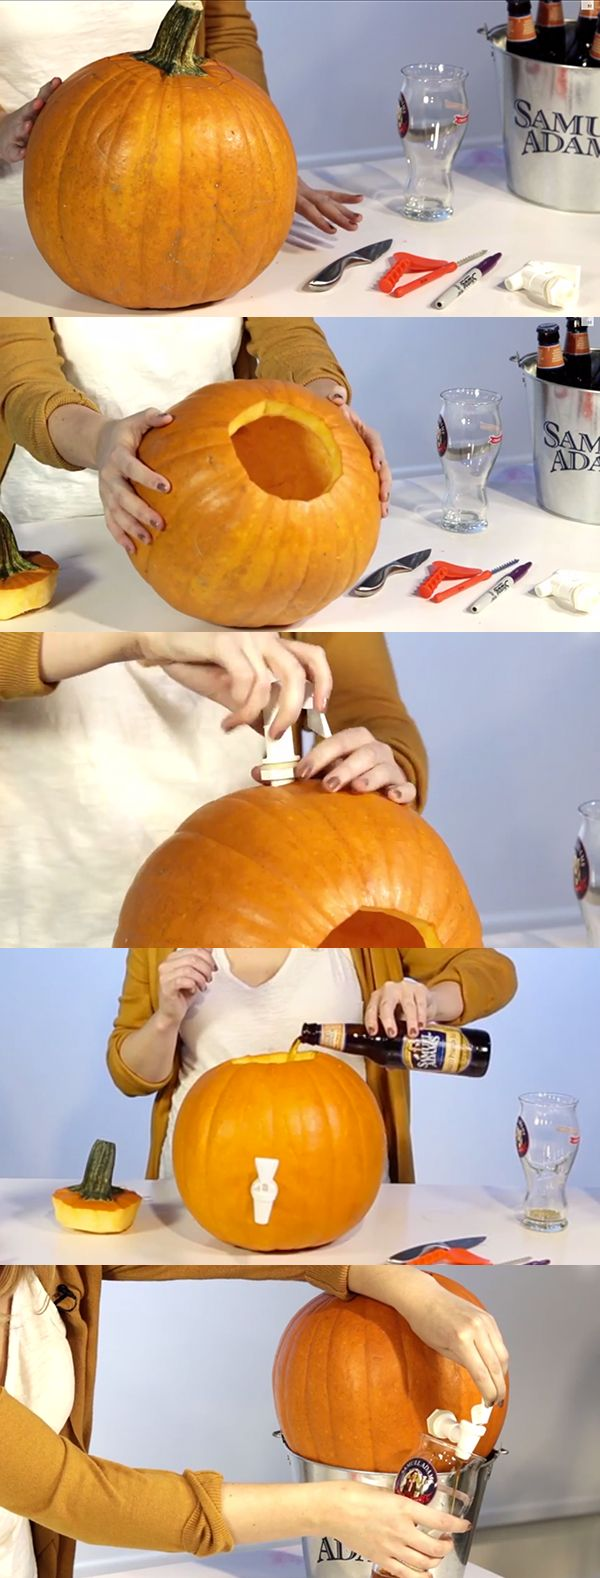 Create a pumpkin beer keg for your Halloween party this year!